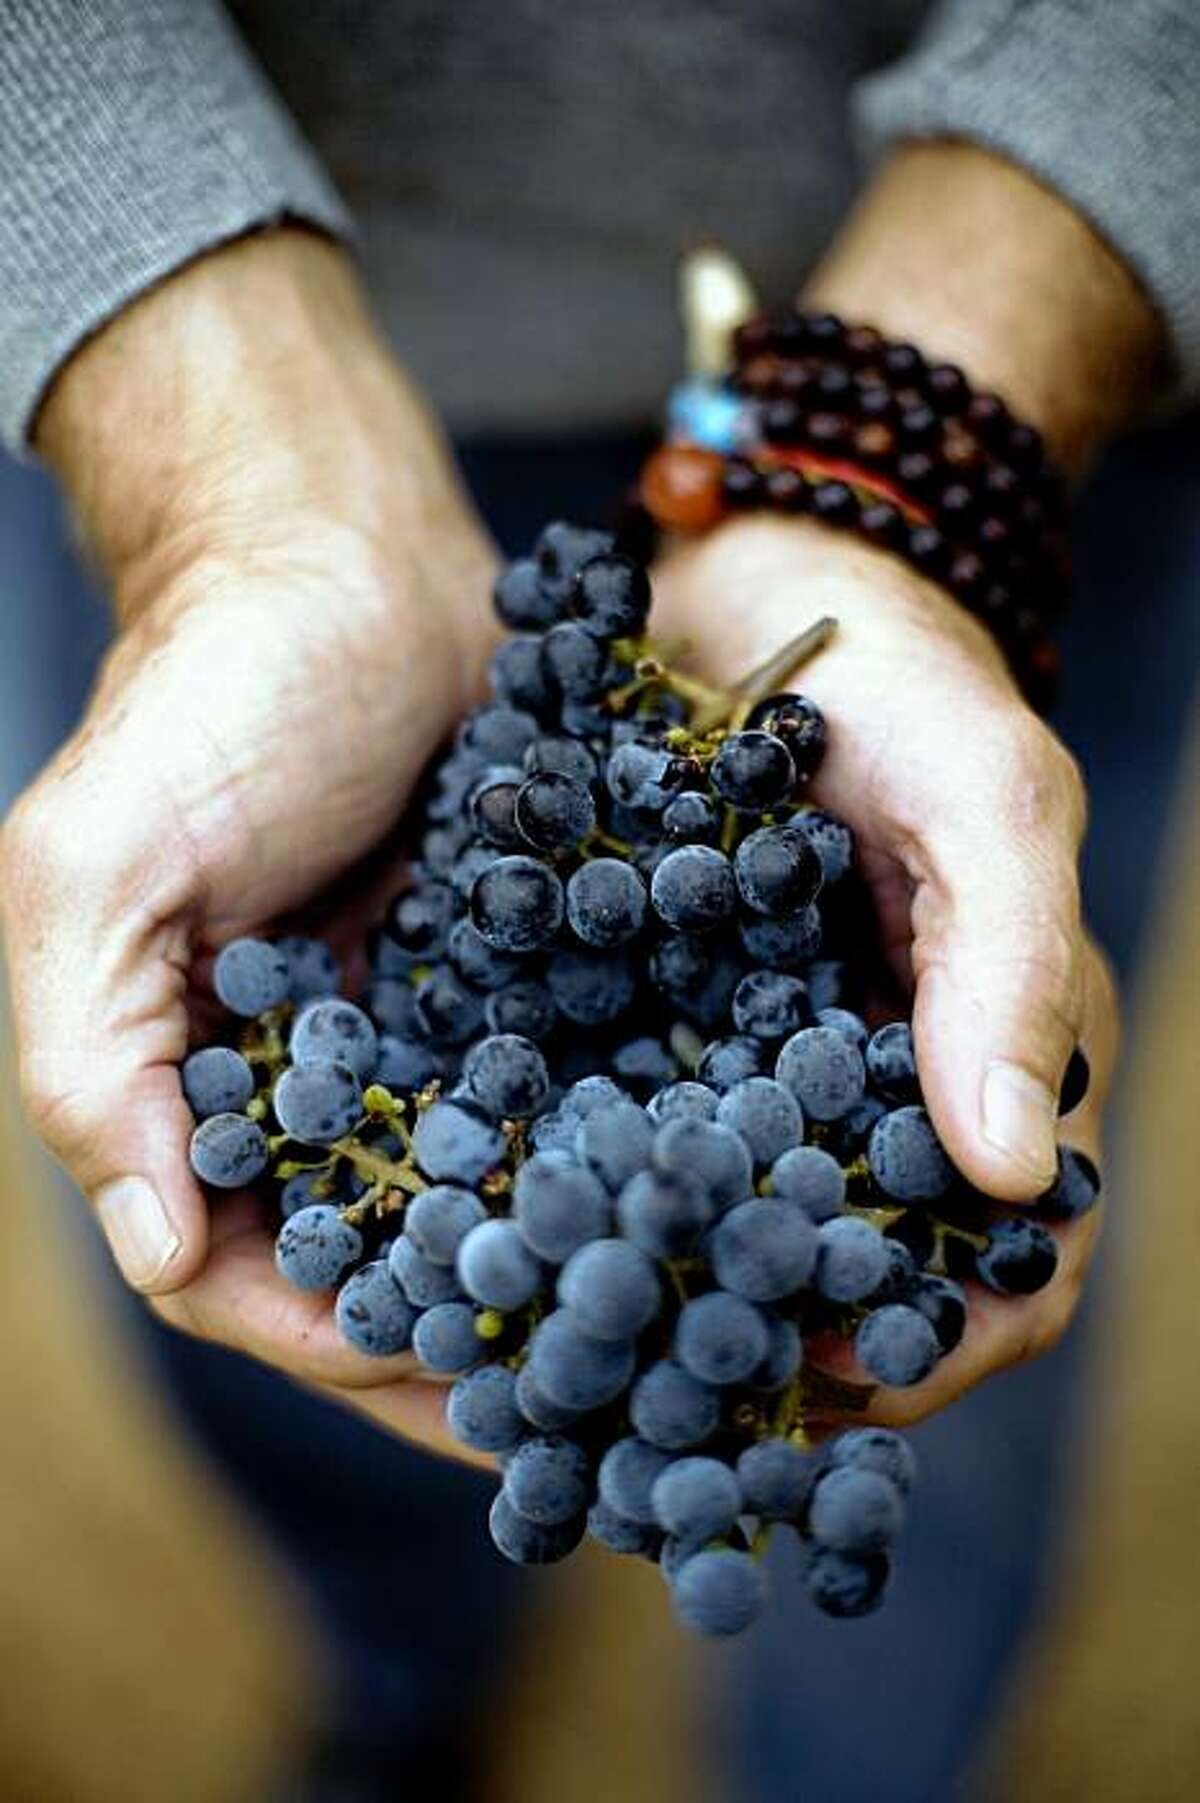 Vintner Dick Grace, of Grace Family Vineyards, in St. Helena, who created the first cult Cabernet, is a practicing buddhist who has been sober for 21 years, holds cabernet grapes, on Monday, August 31, 2009. Prayer beads wrap his right wrist.